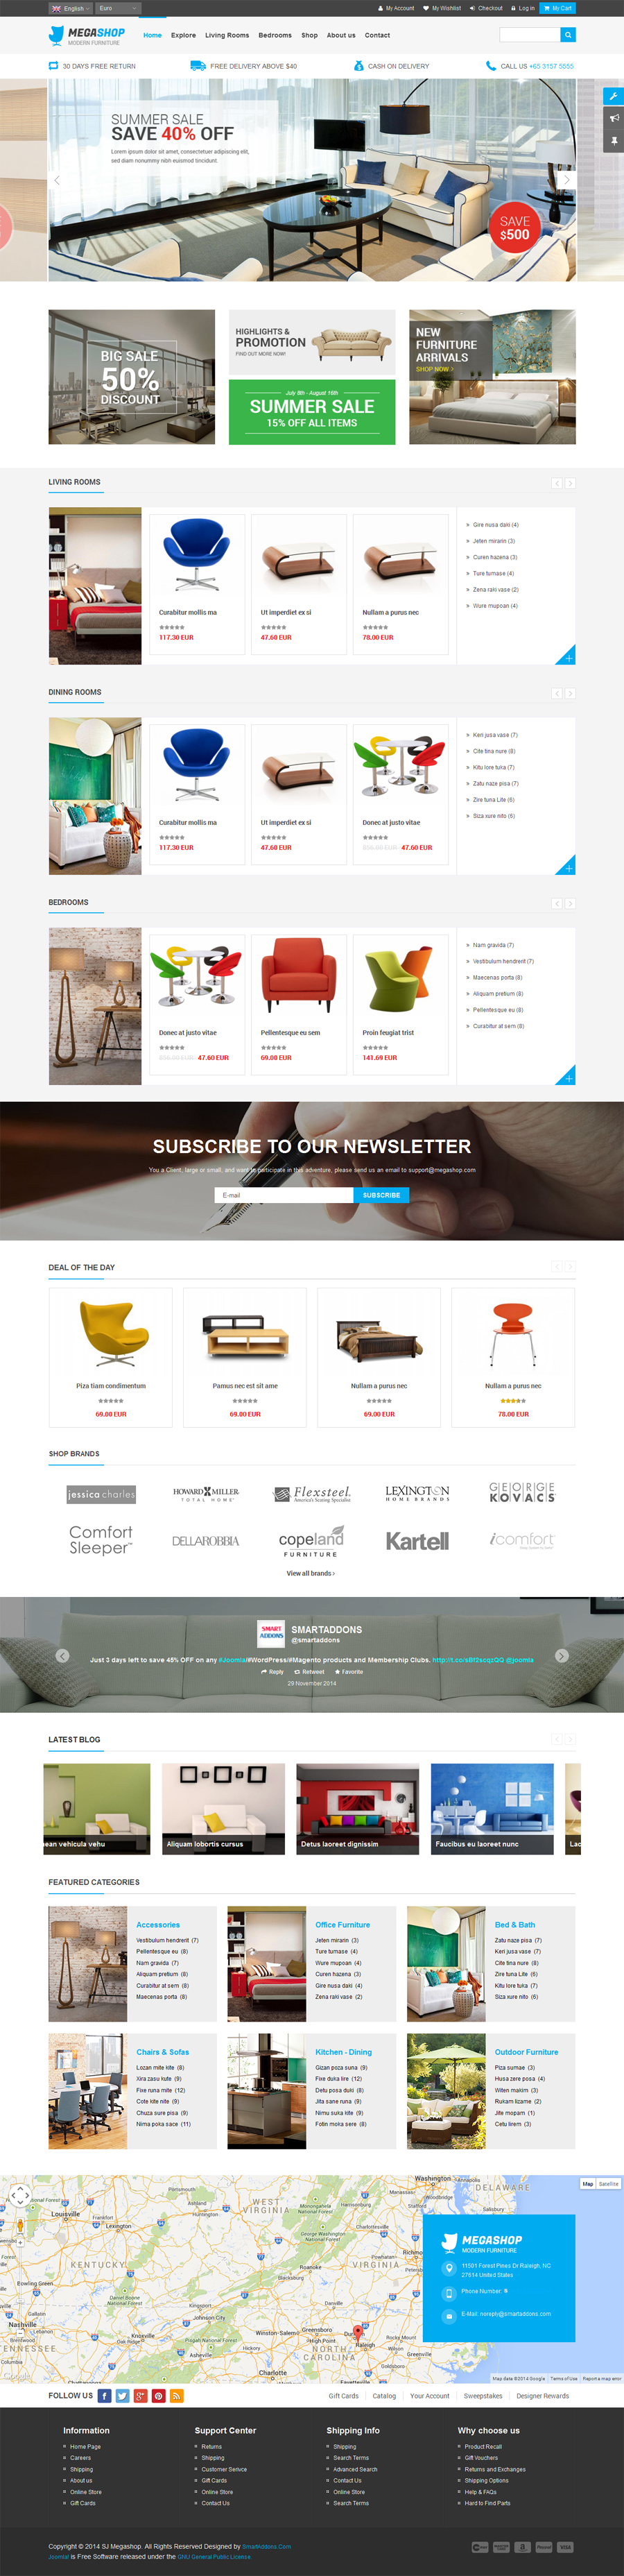 SJ MegaShop - Responsive eCommerce Joomla Template - 03_blue_color.png